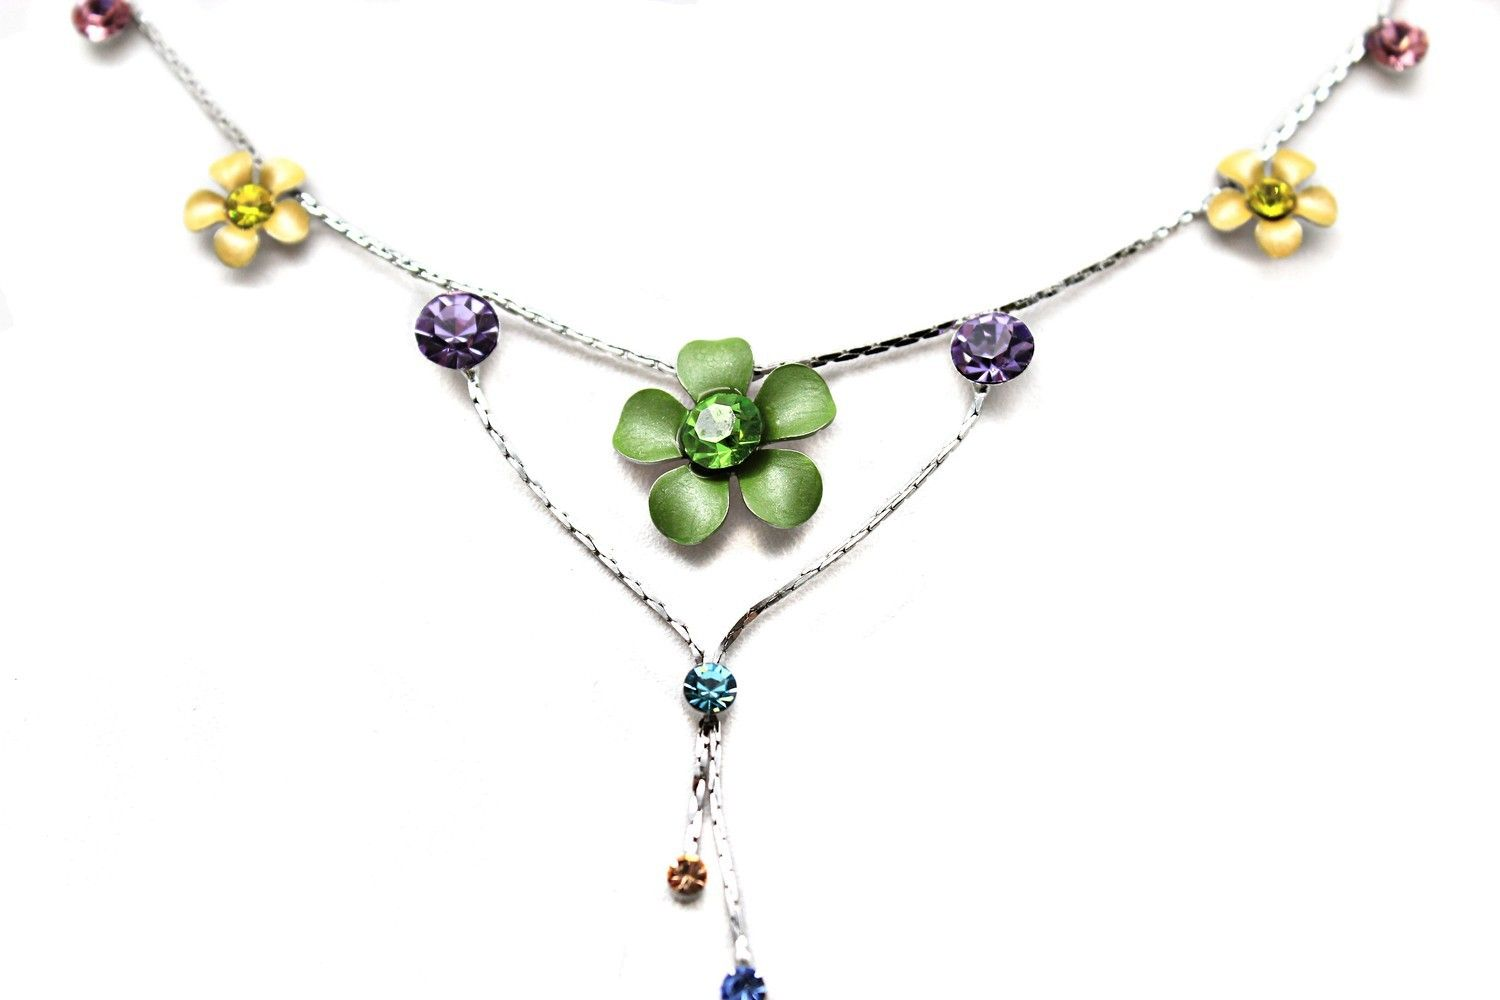 Hawaii sparkle plumeria necklace with cz in multiple color in 2018 hawaii sparkle plumeria necklace with cz in multiple color izmirmasajfo